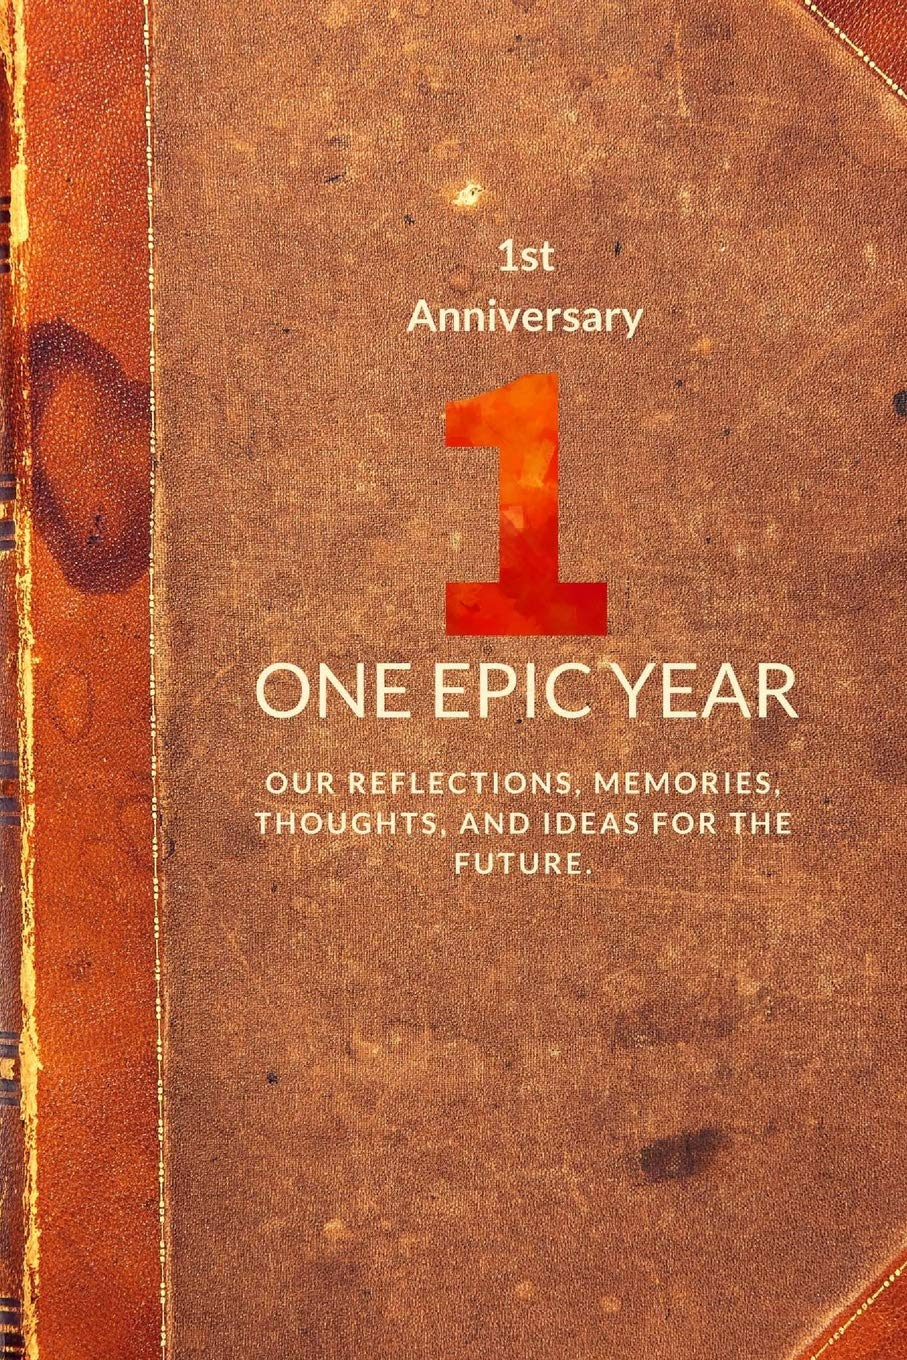 One Epic Year First Anniversary